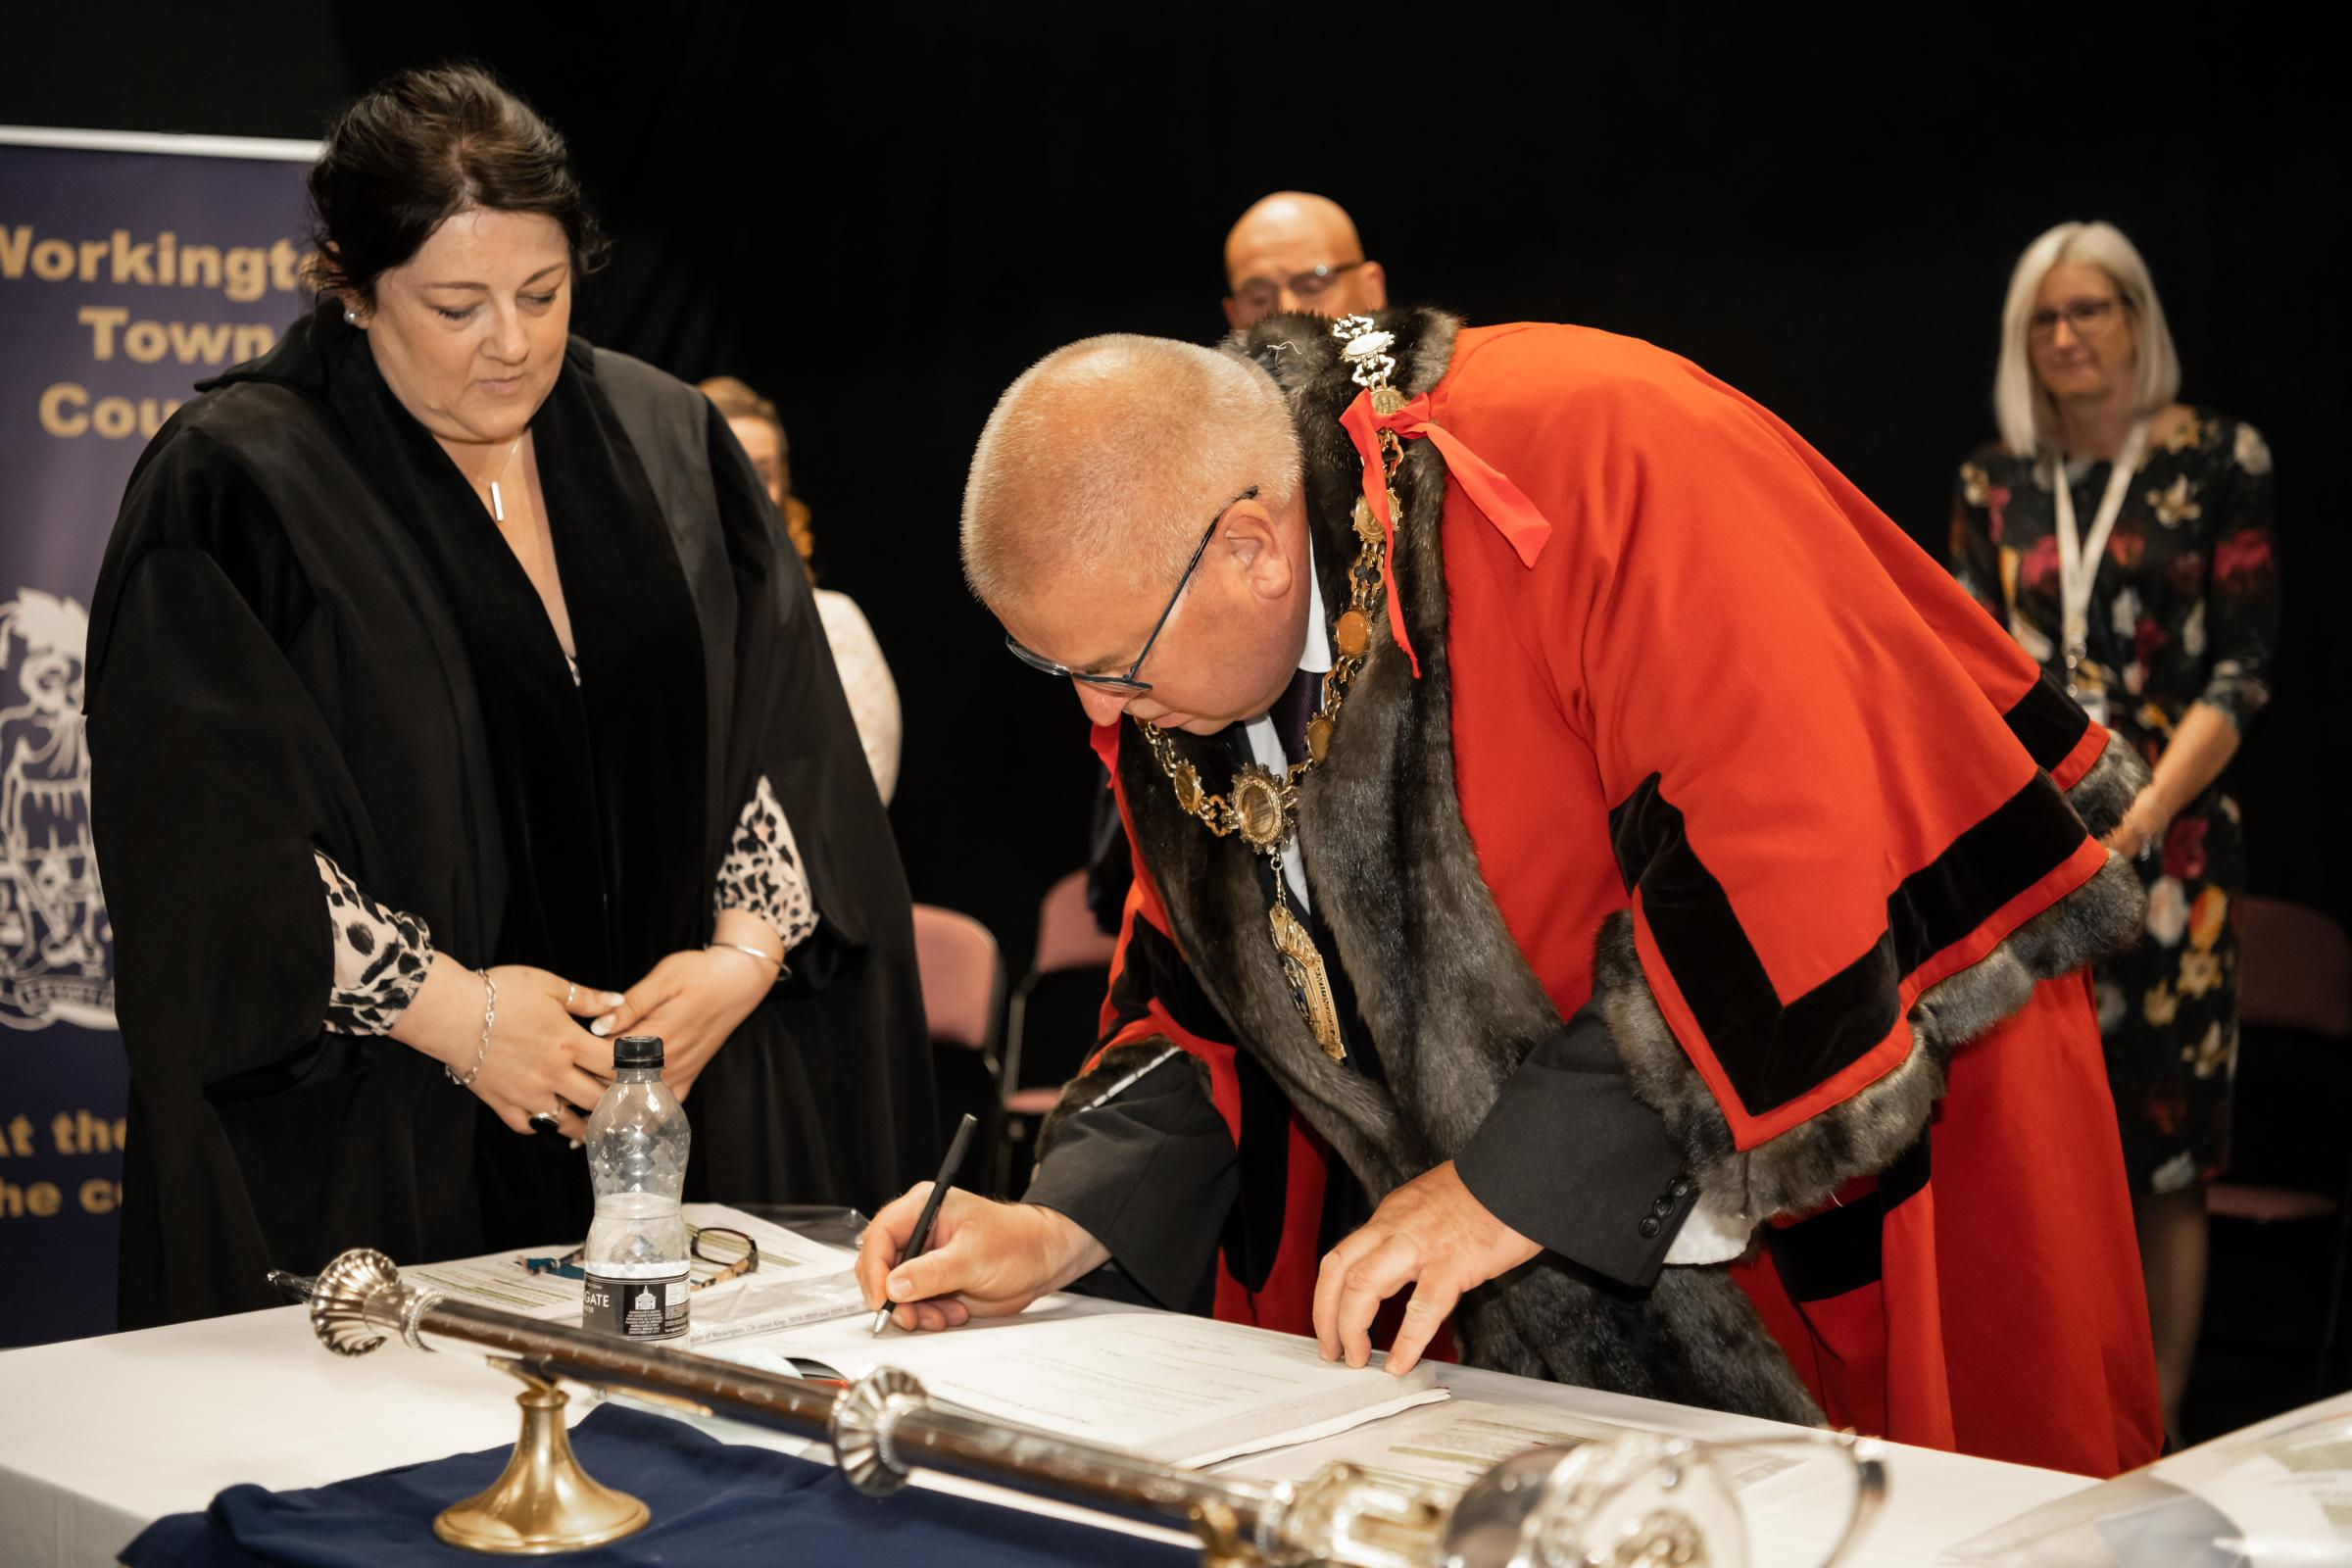 Workington Town Council appoints its new mayor